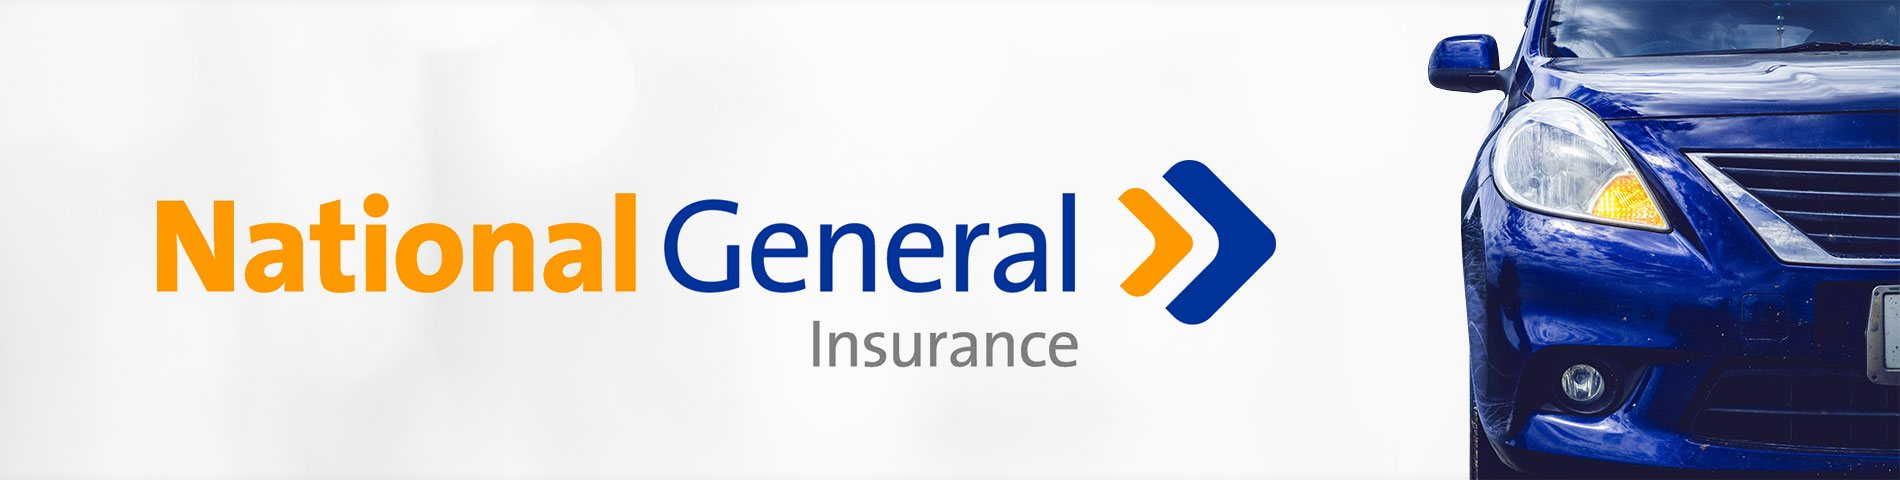 call national general insurance